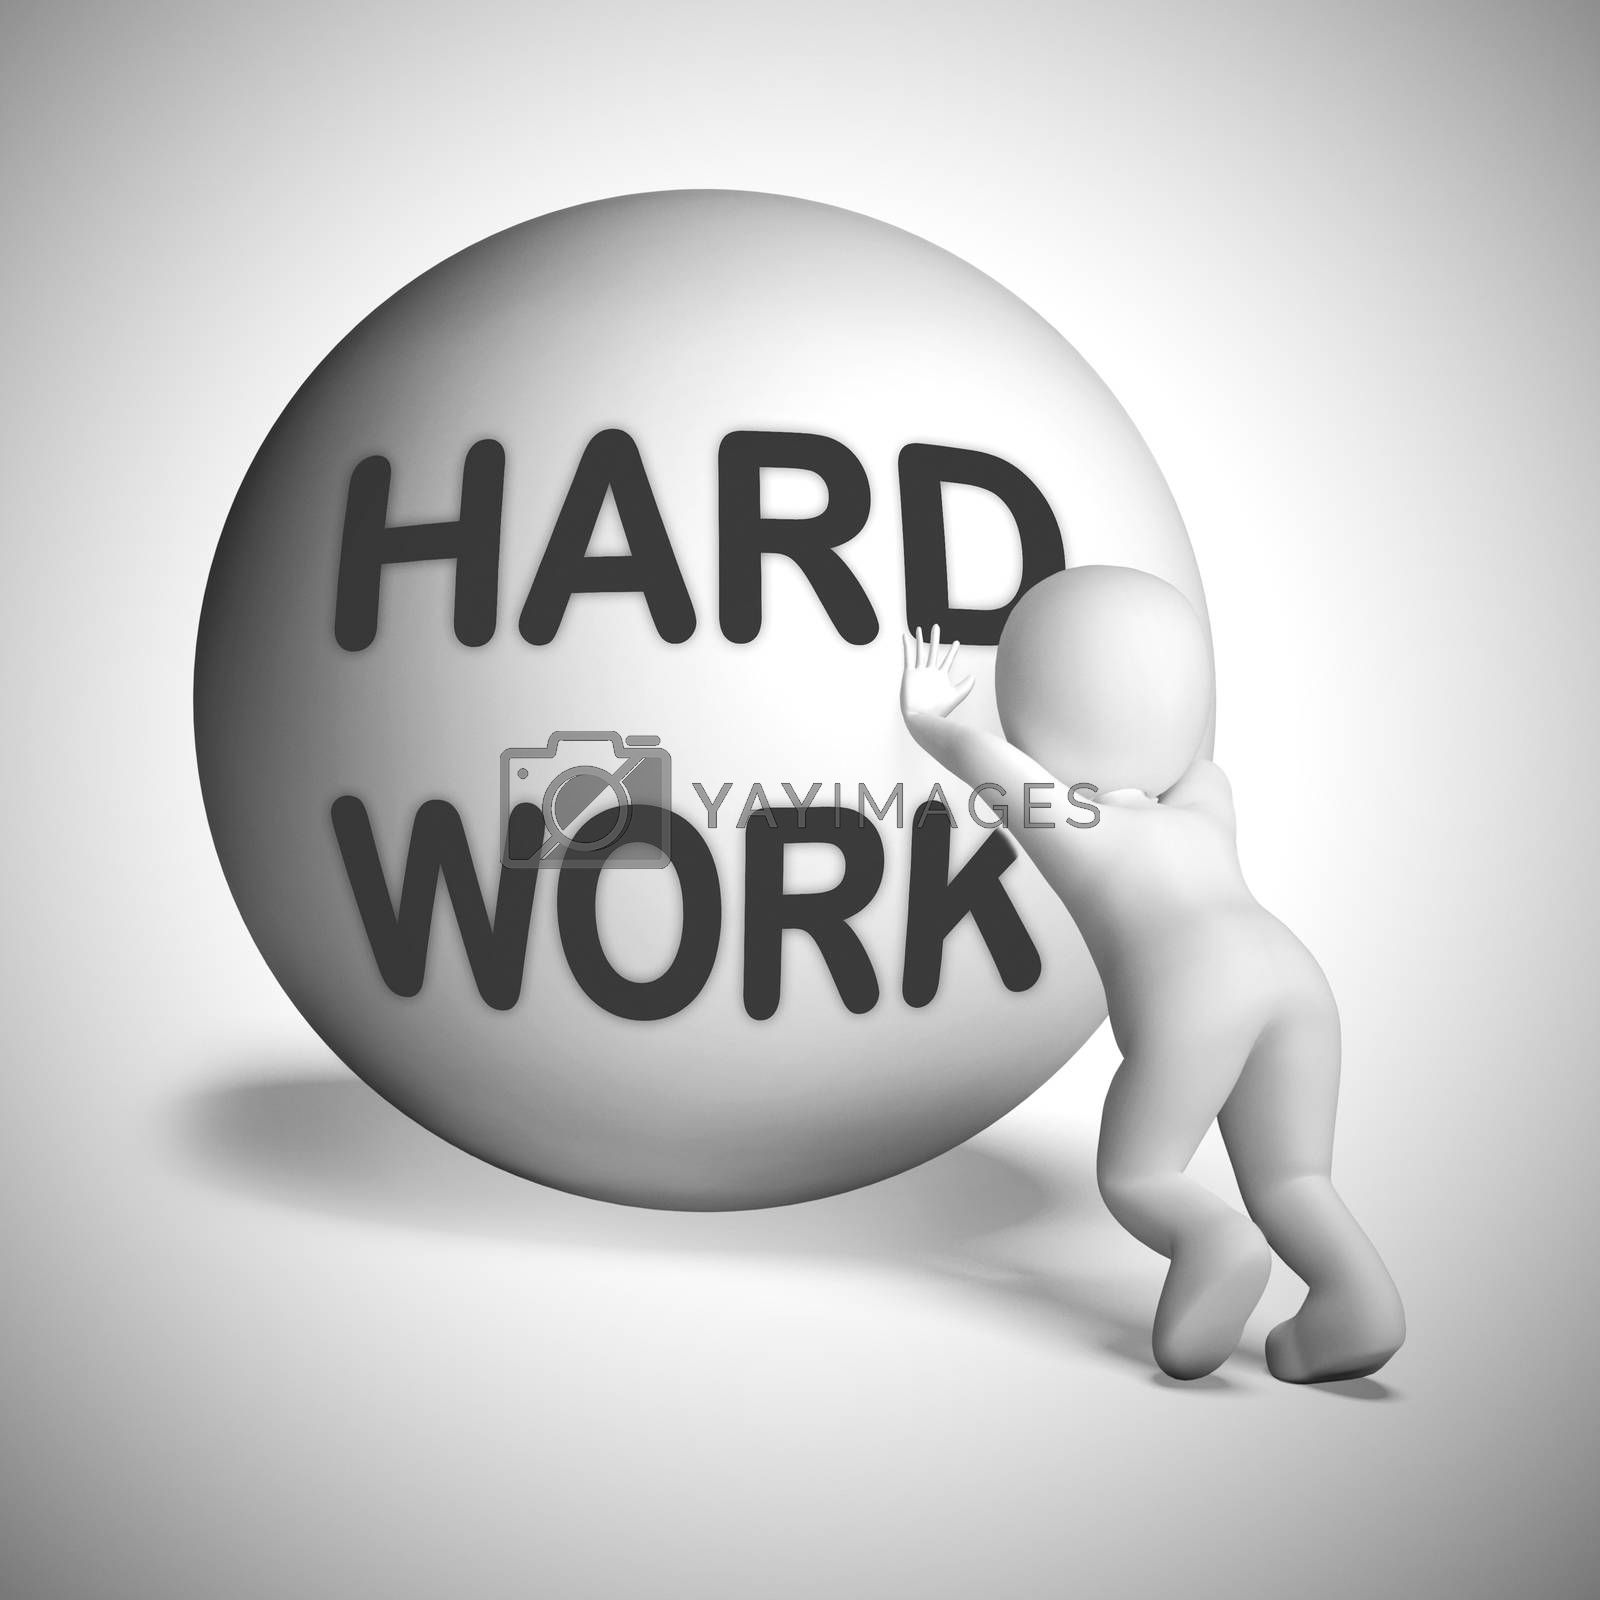 Hard work ball rolled uphill means perseverance and a tough job. Physical exertion or manual labour - 3d illustration